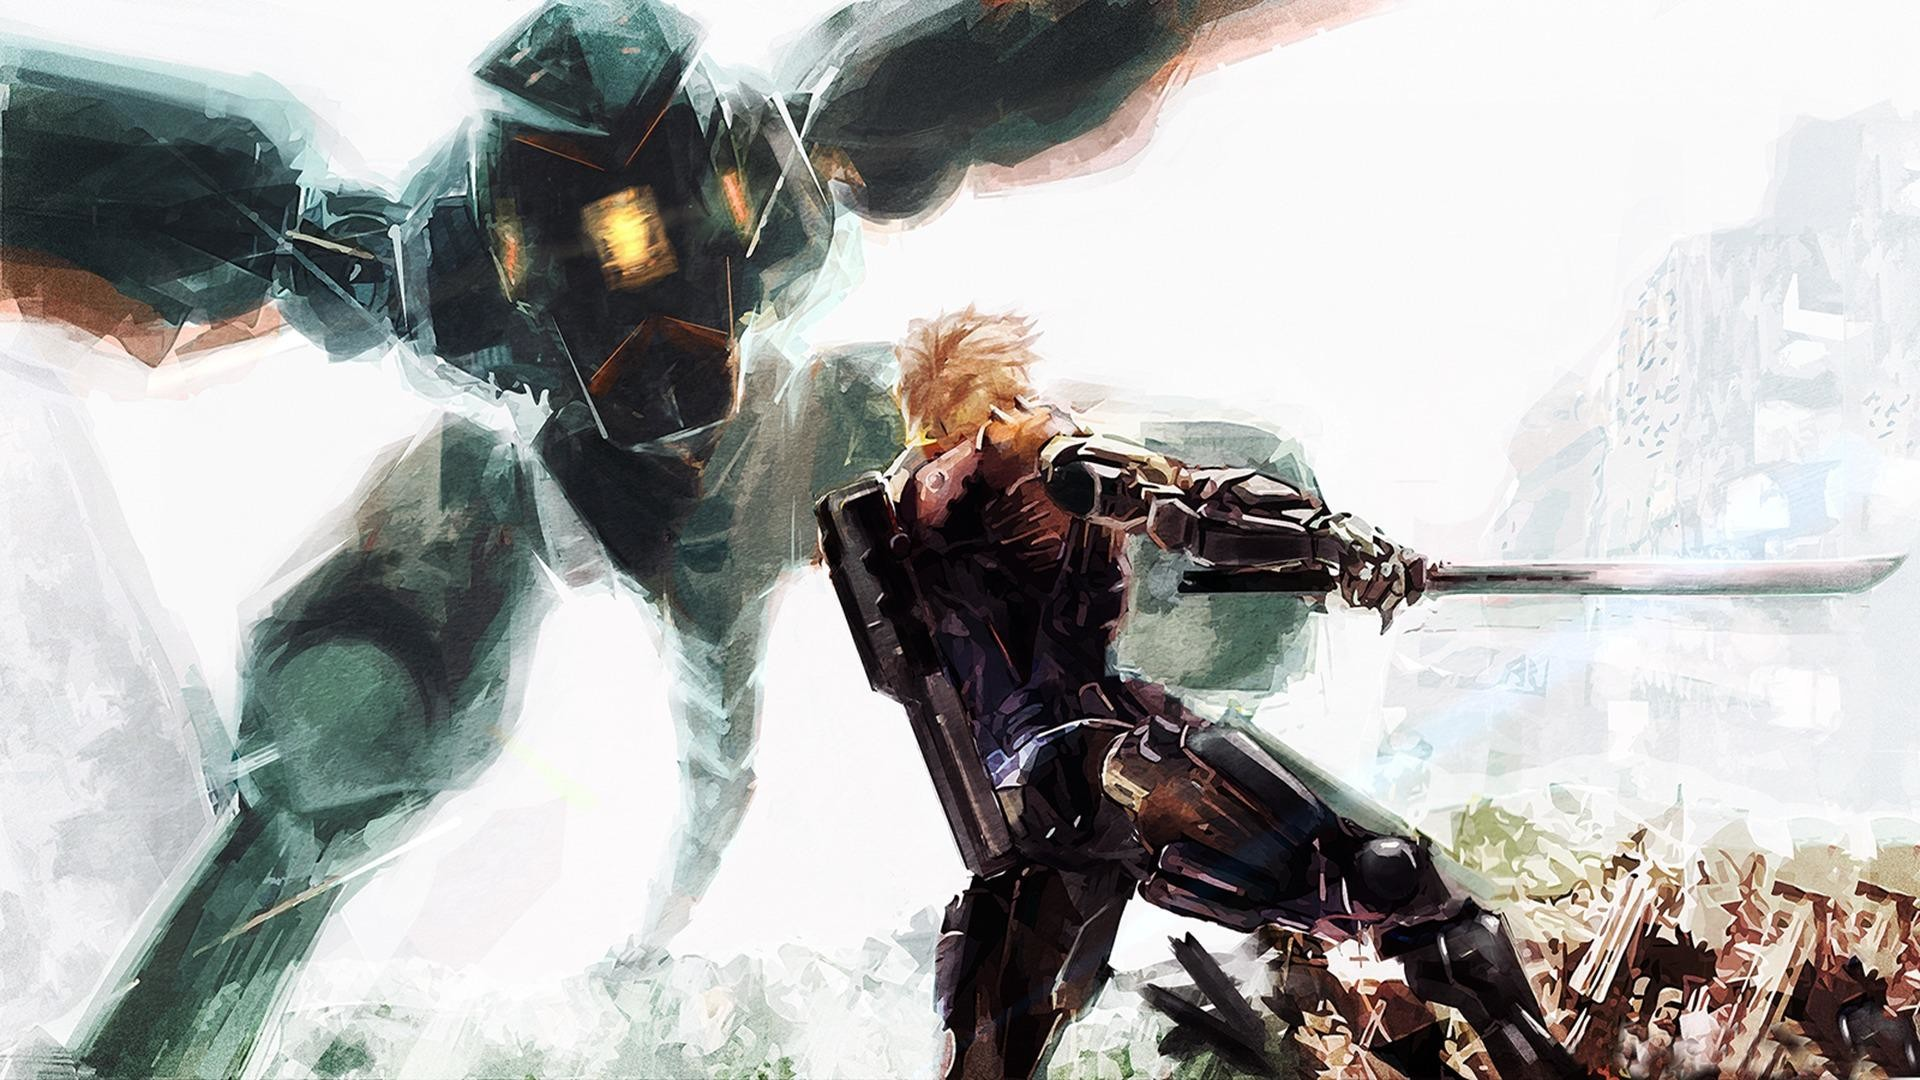 Res: 1920x1080, Metal Gear Battles Technics Swords Robot Solid Snake, Rex (MGS) Games  wallpaper thumb